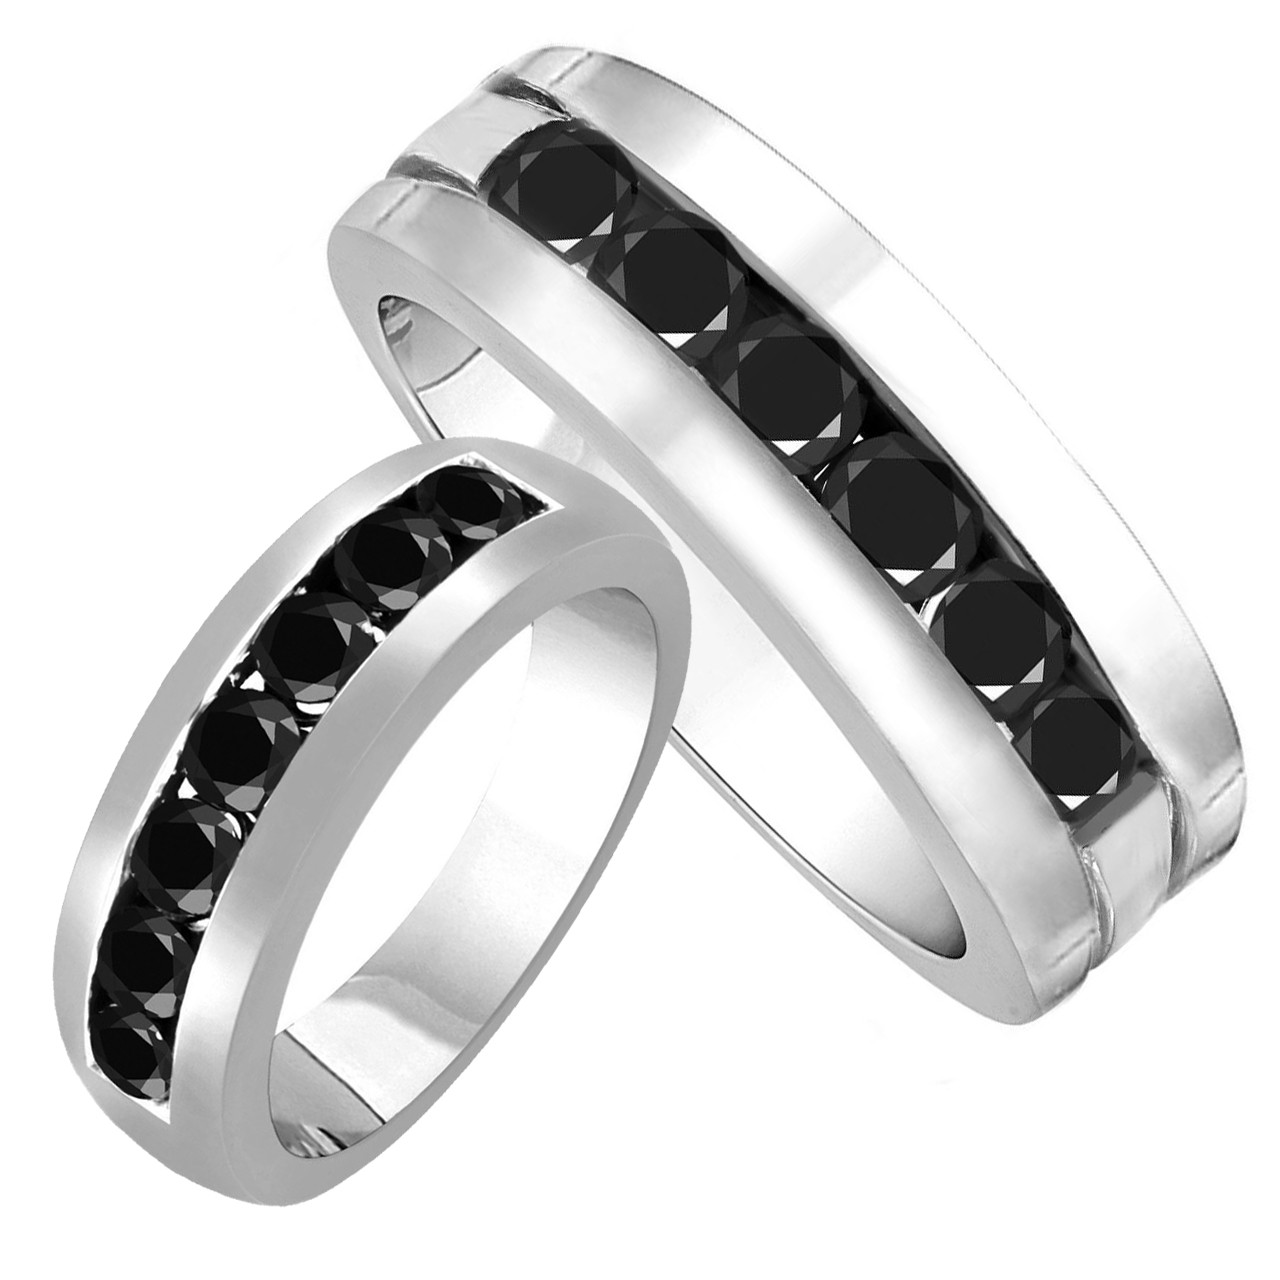 Black Wedding Bands.His And Hers Wedding Bands Unique Black Diamond Matching Rings Couple Wedding Bands Set 3 00 Carat Half Eternity Rings 14k White Gold